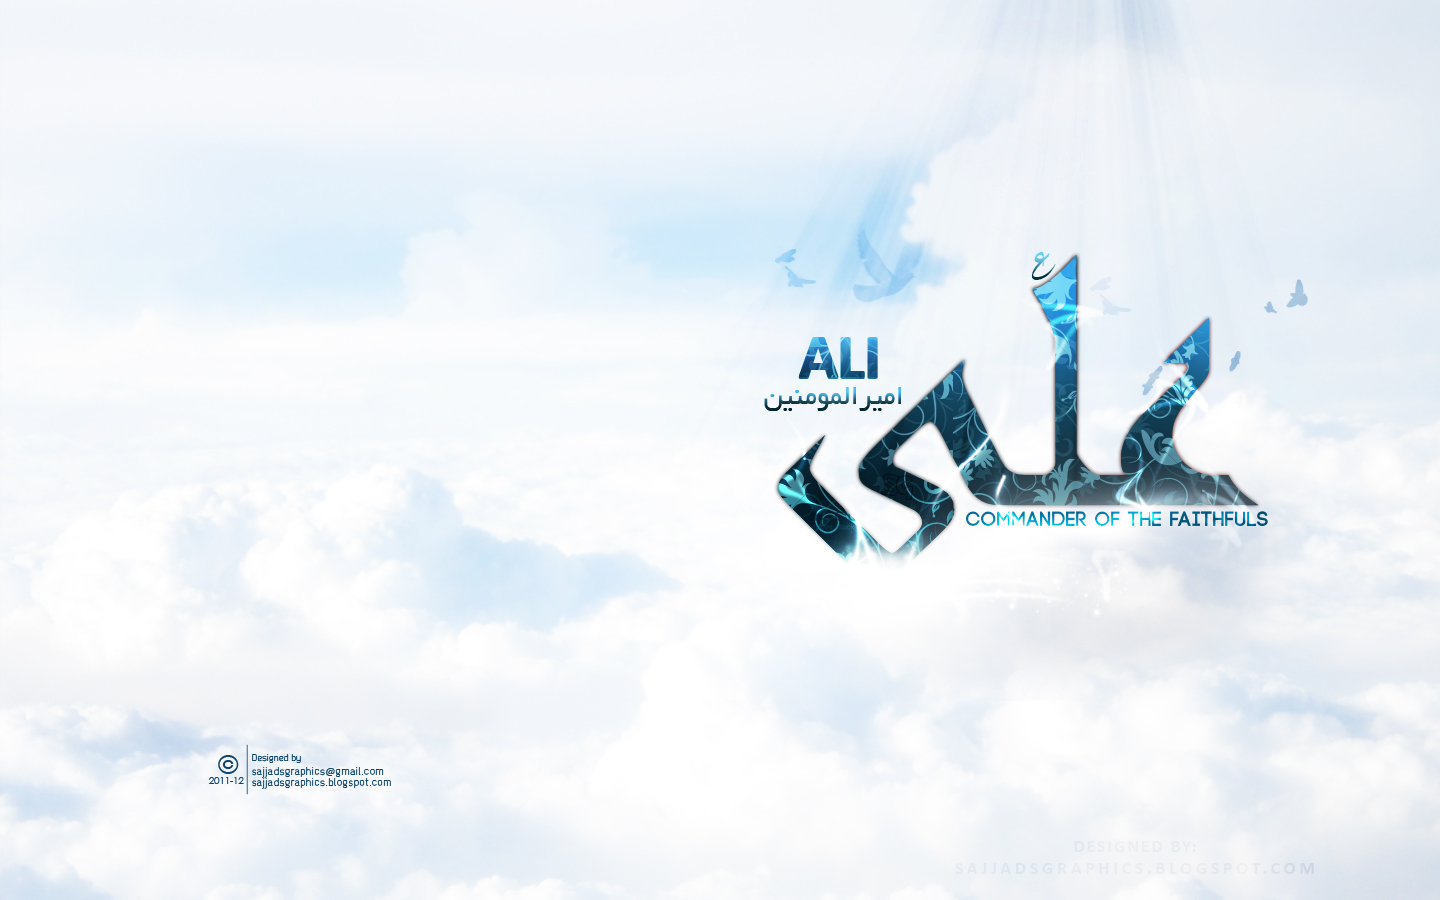 http://4.bp.blogspot.com/-wbY8-qJkhEk/ThSBfZA7GMI/AAAAAAAAAPw/4I5vm7a-Mo0/s1600/Imam_Ali_as_new_wallpaper_06_07_11_FINAL_17.jpg